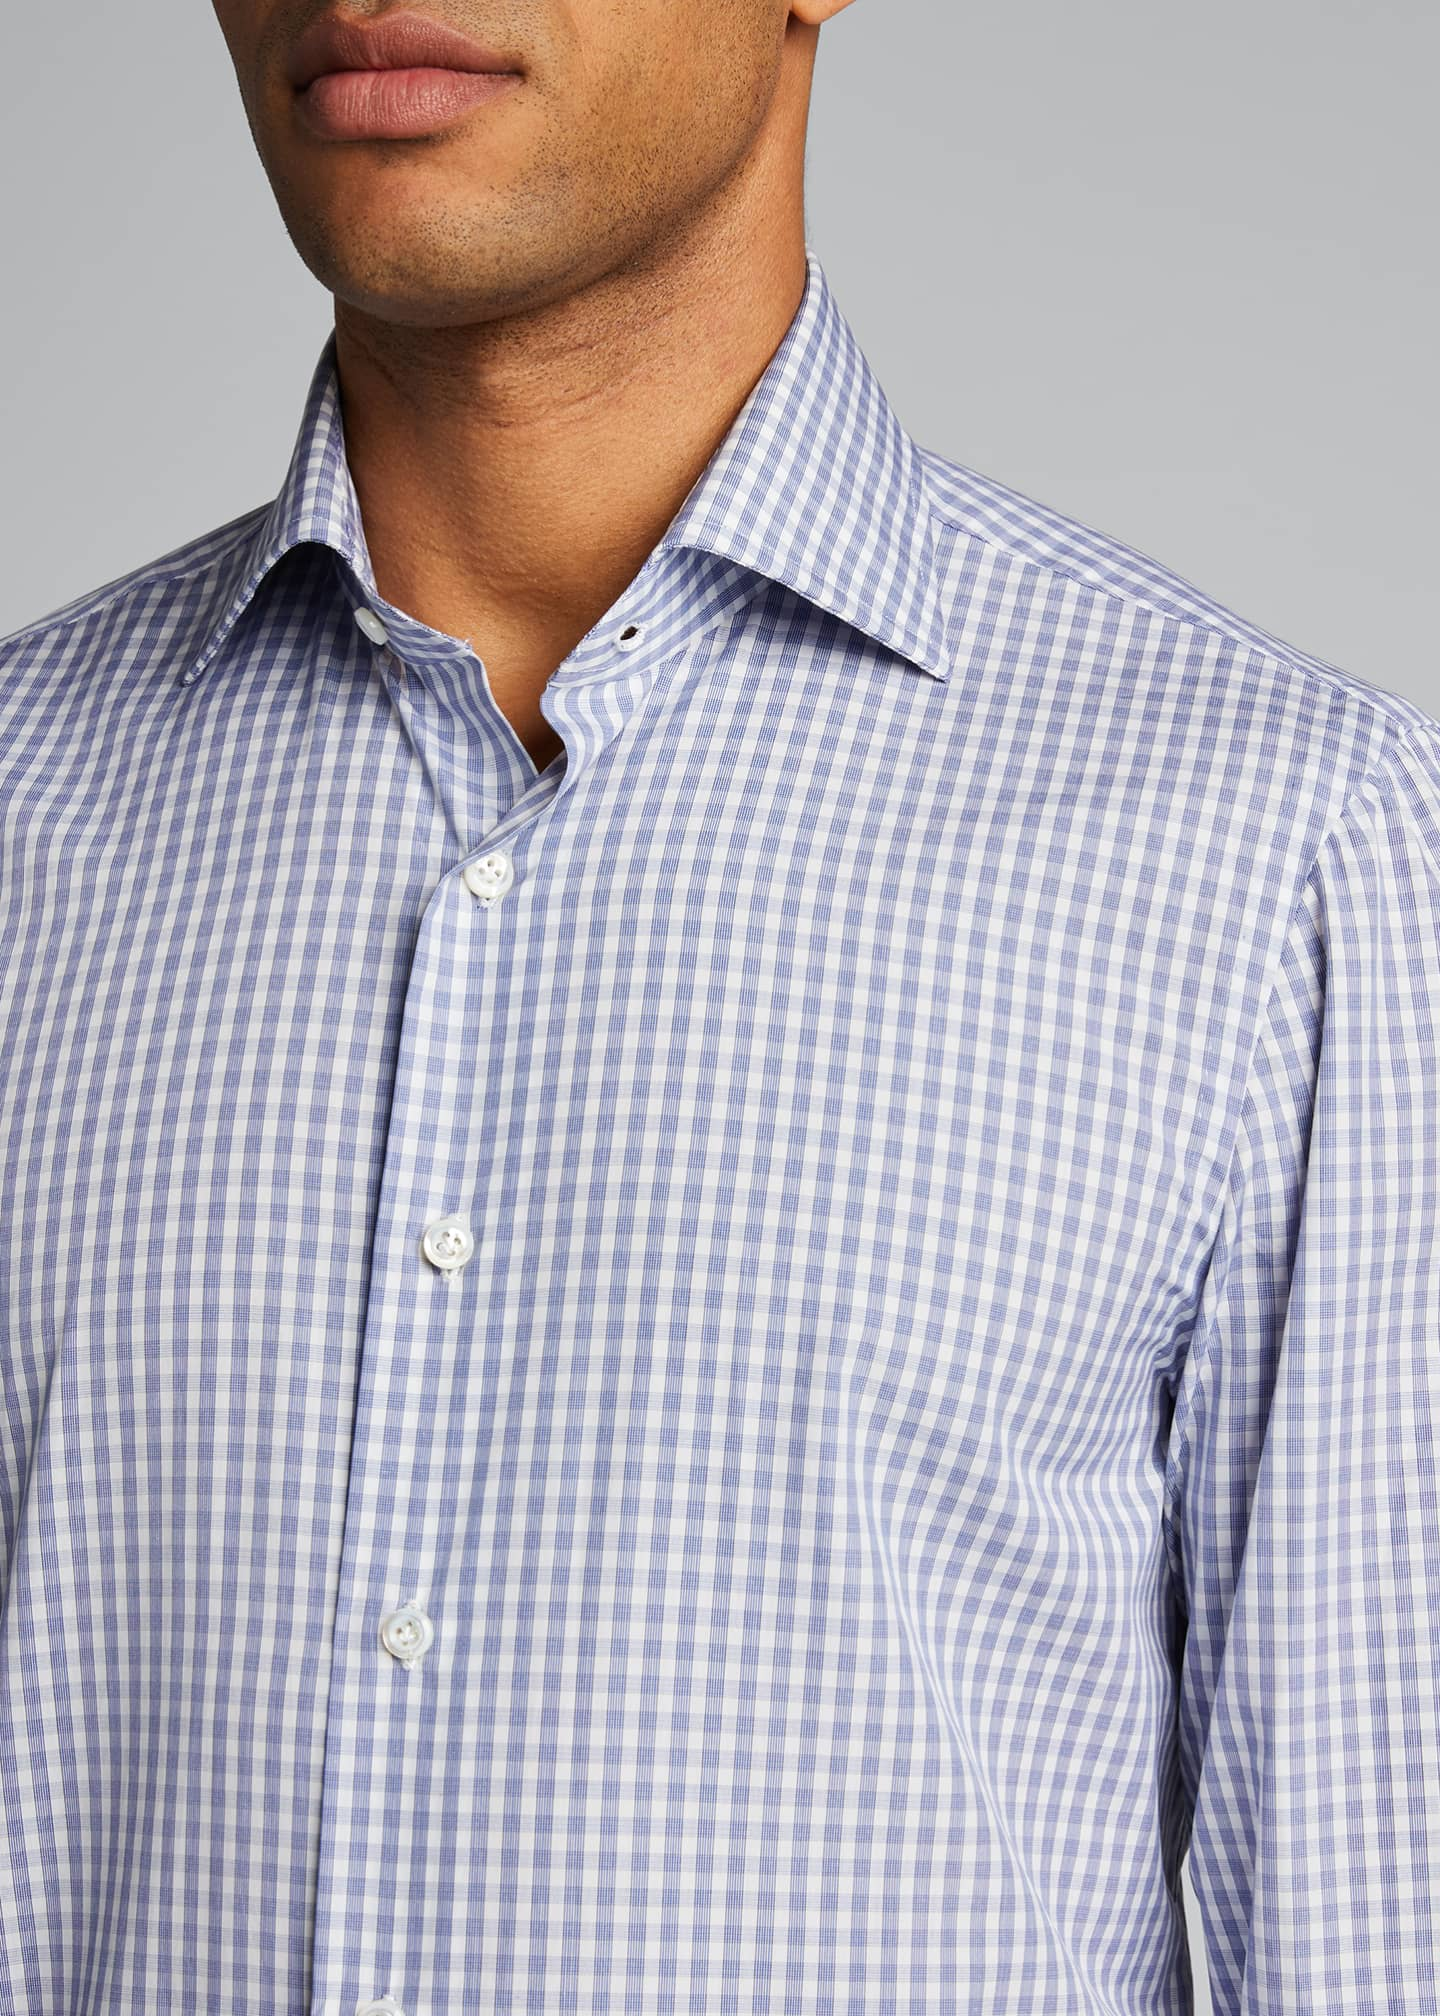 Image 4 of 5: Men's Check Cotton Sport Shirt